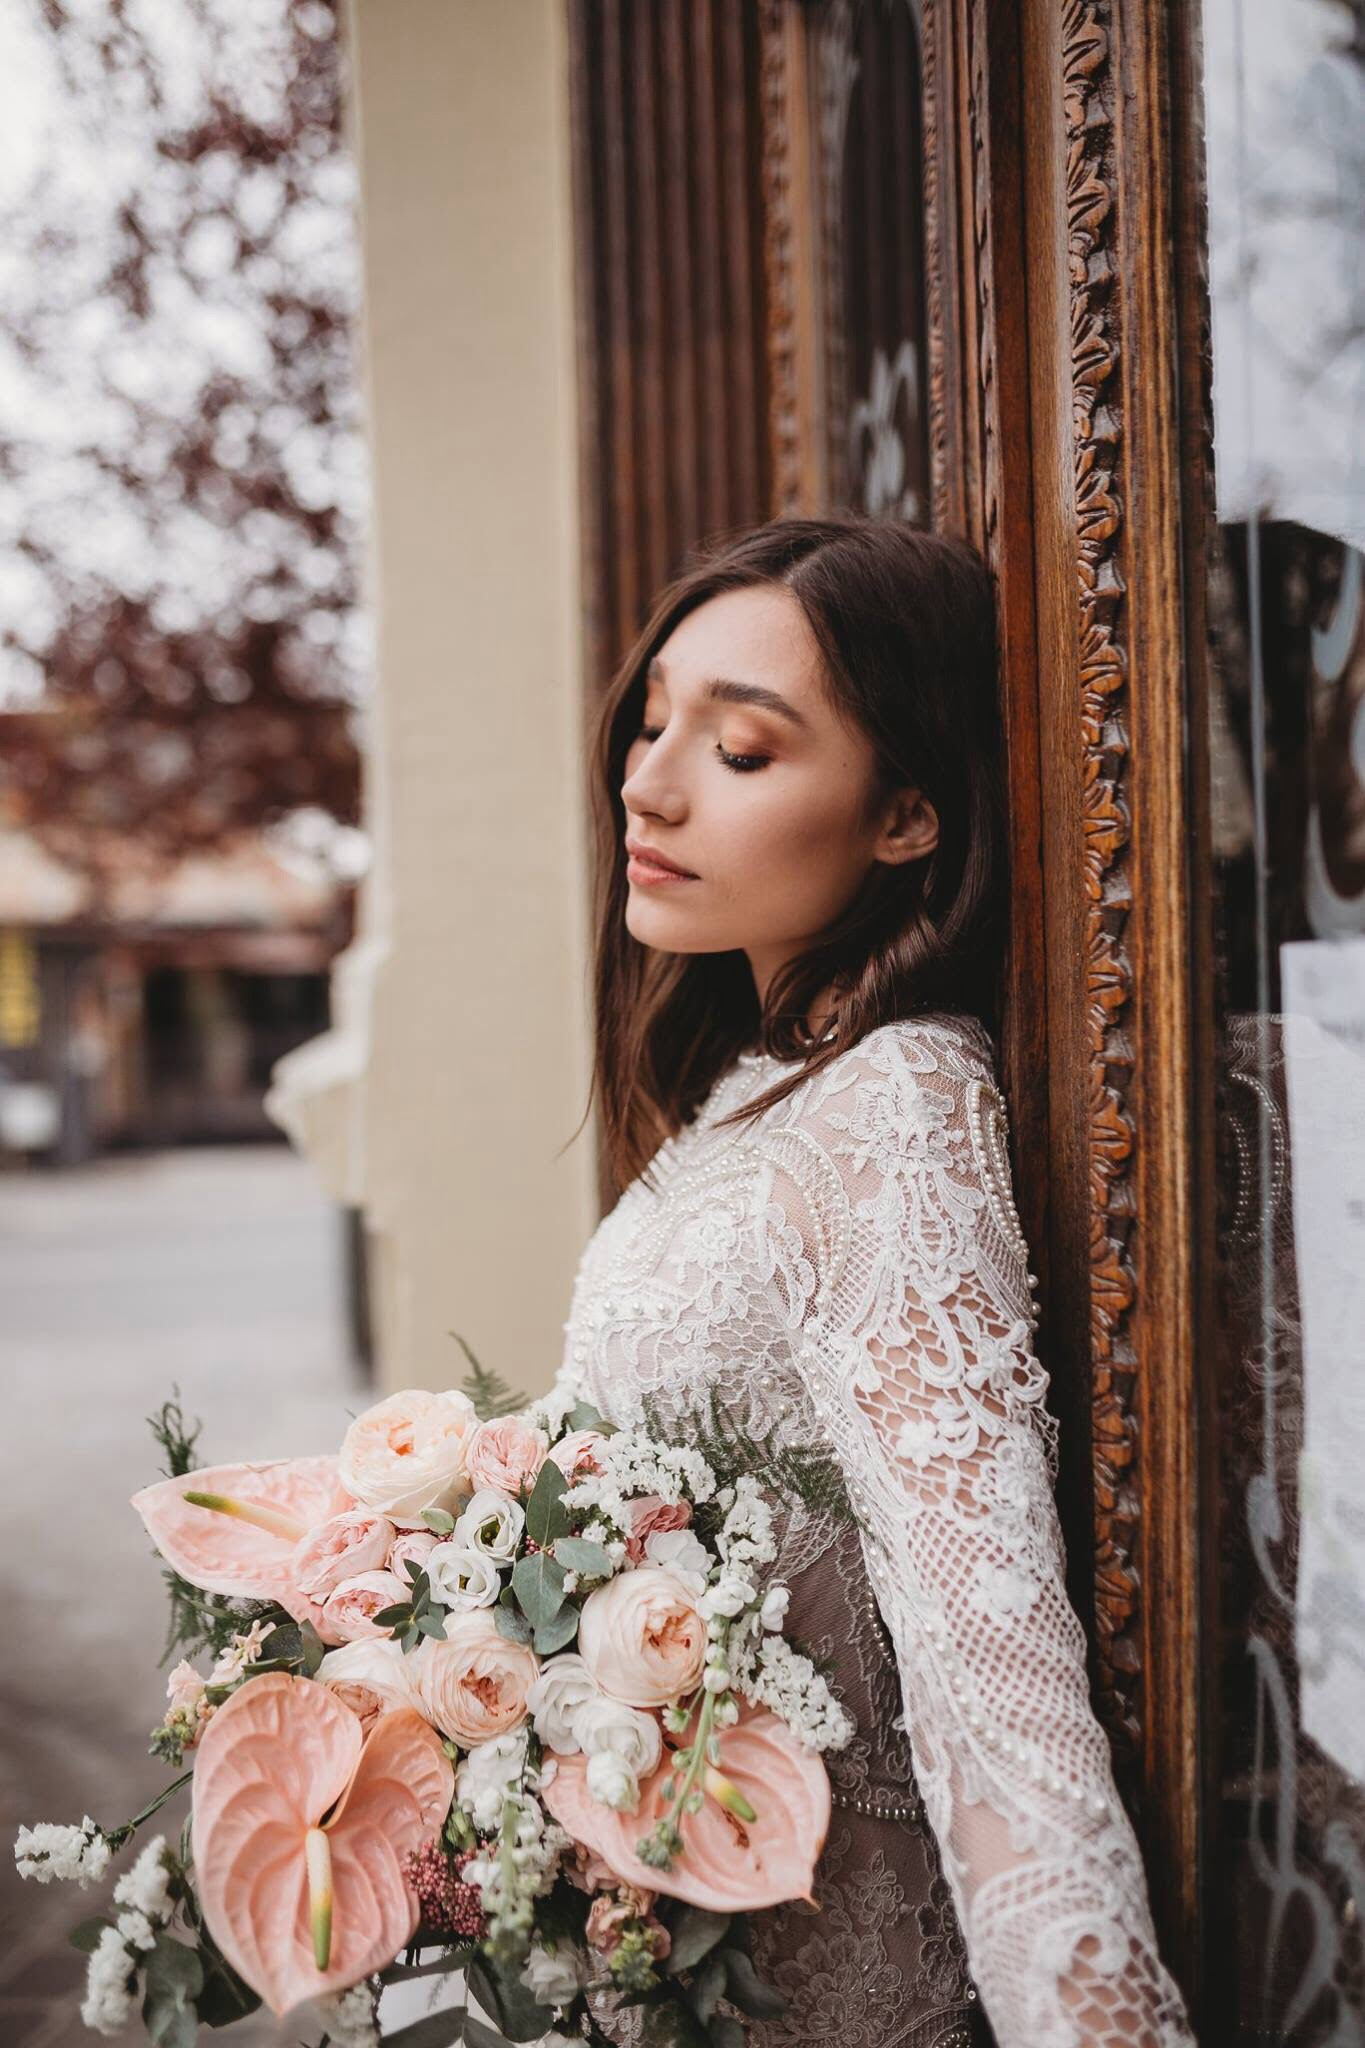 Long sleeves and fancy laces are part of this boho wedding dress